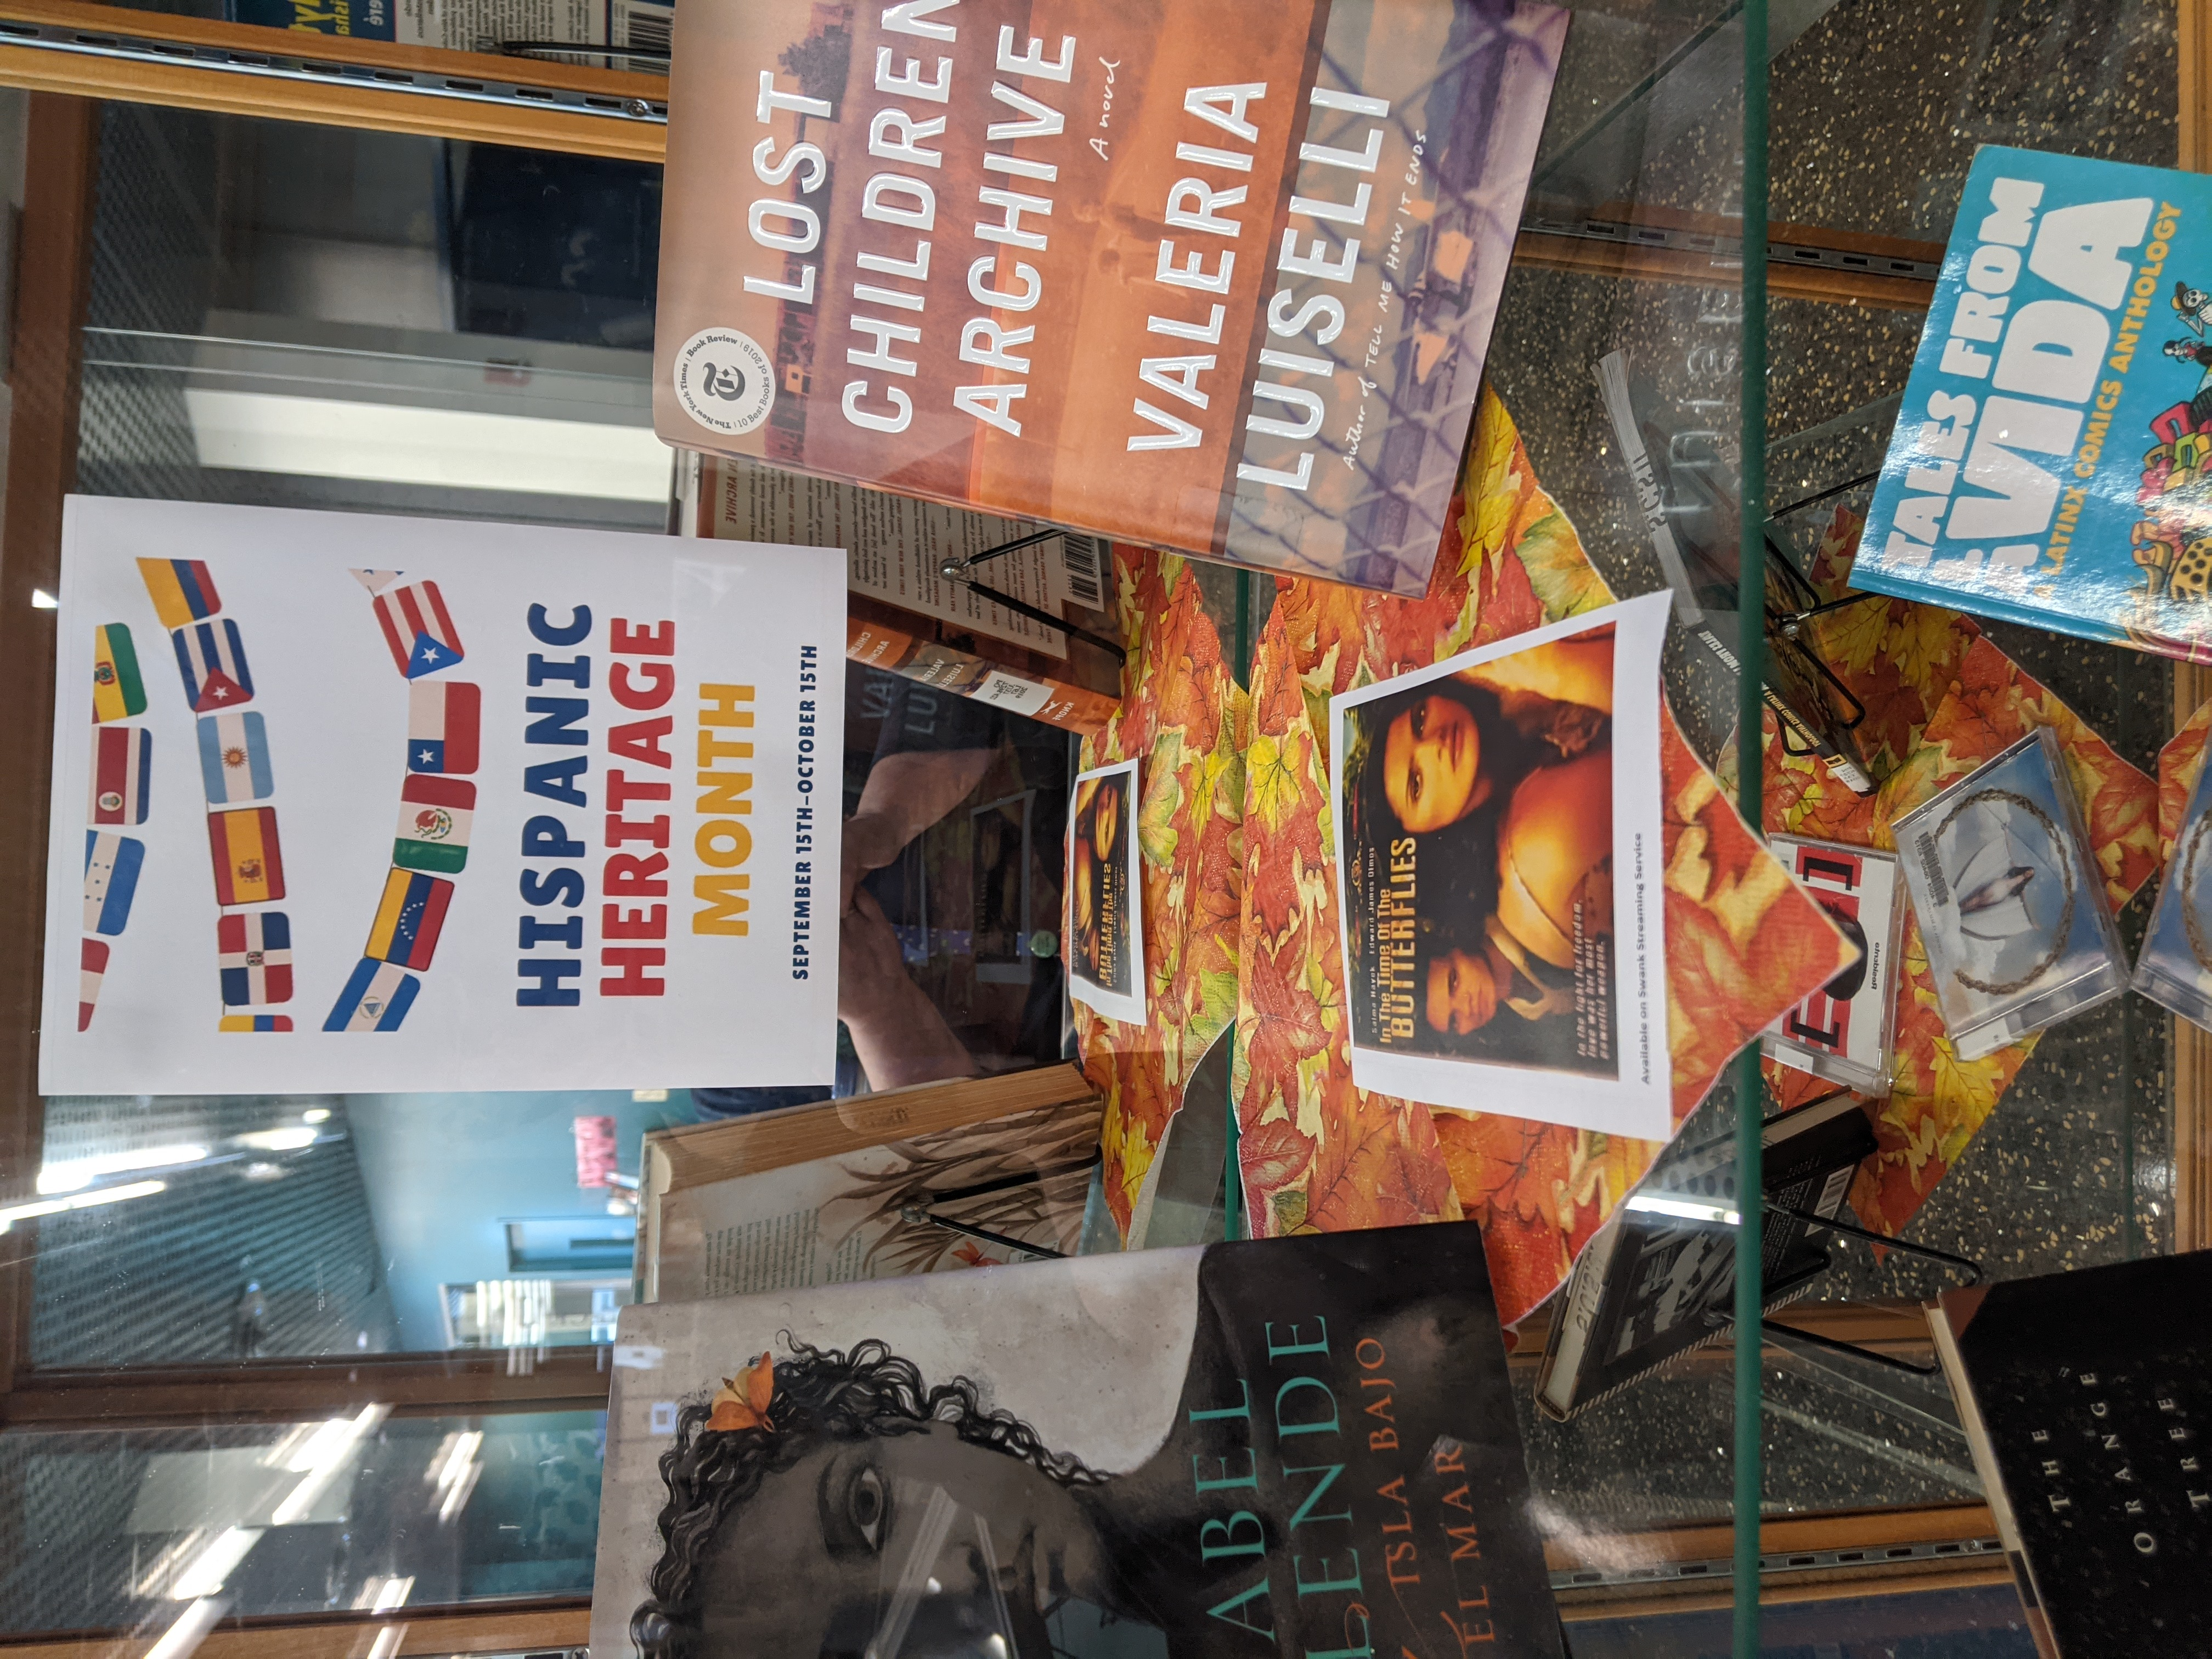 Exhibit case for Hispanic Heritage Month with books